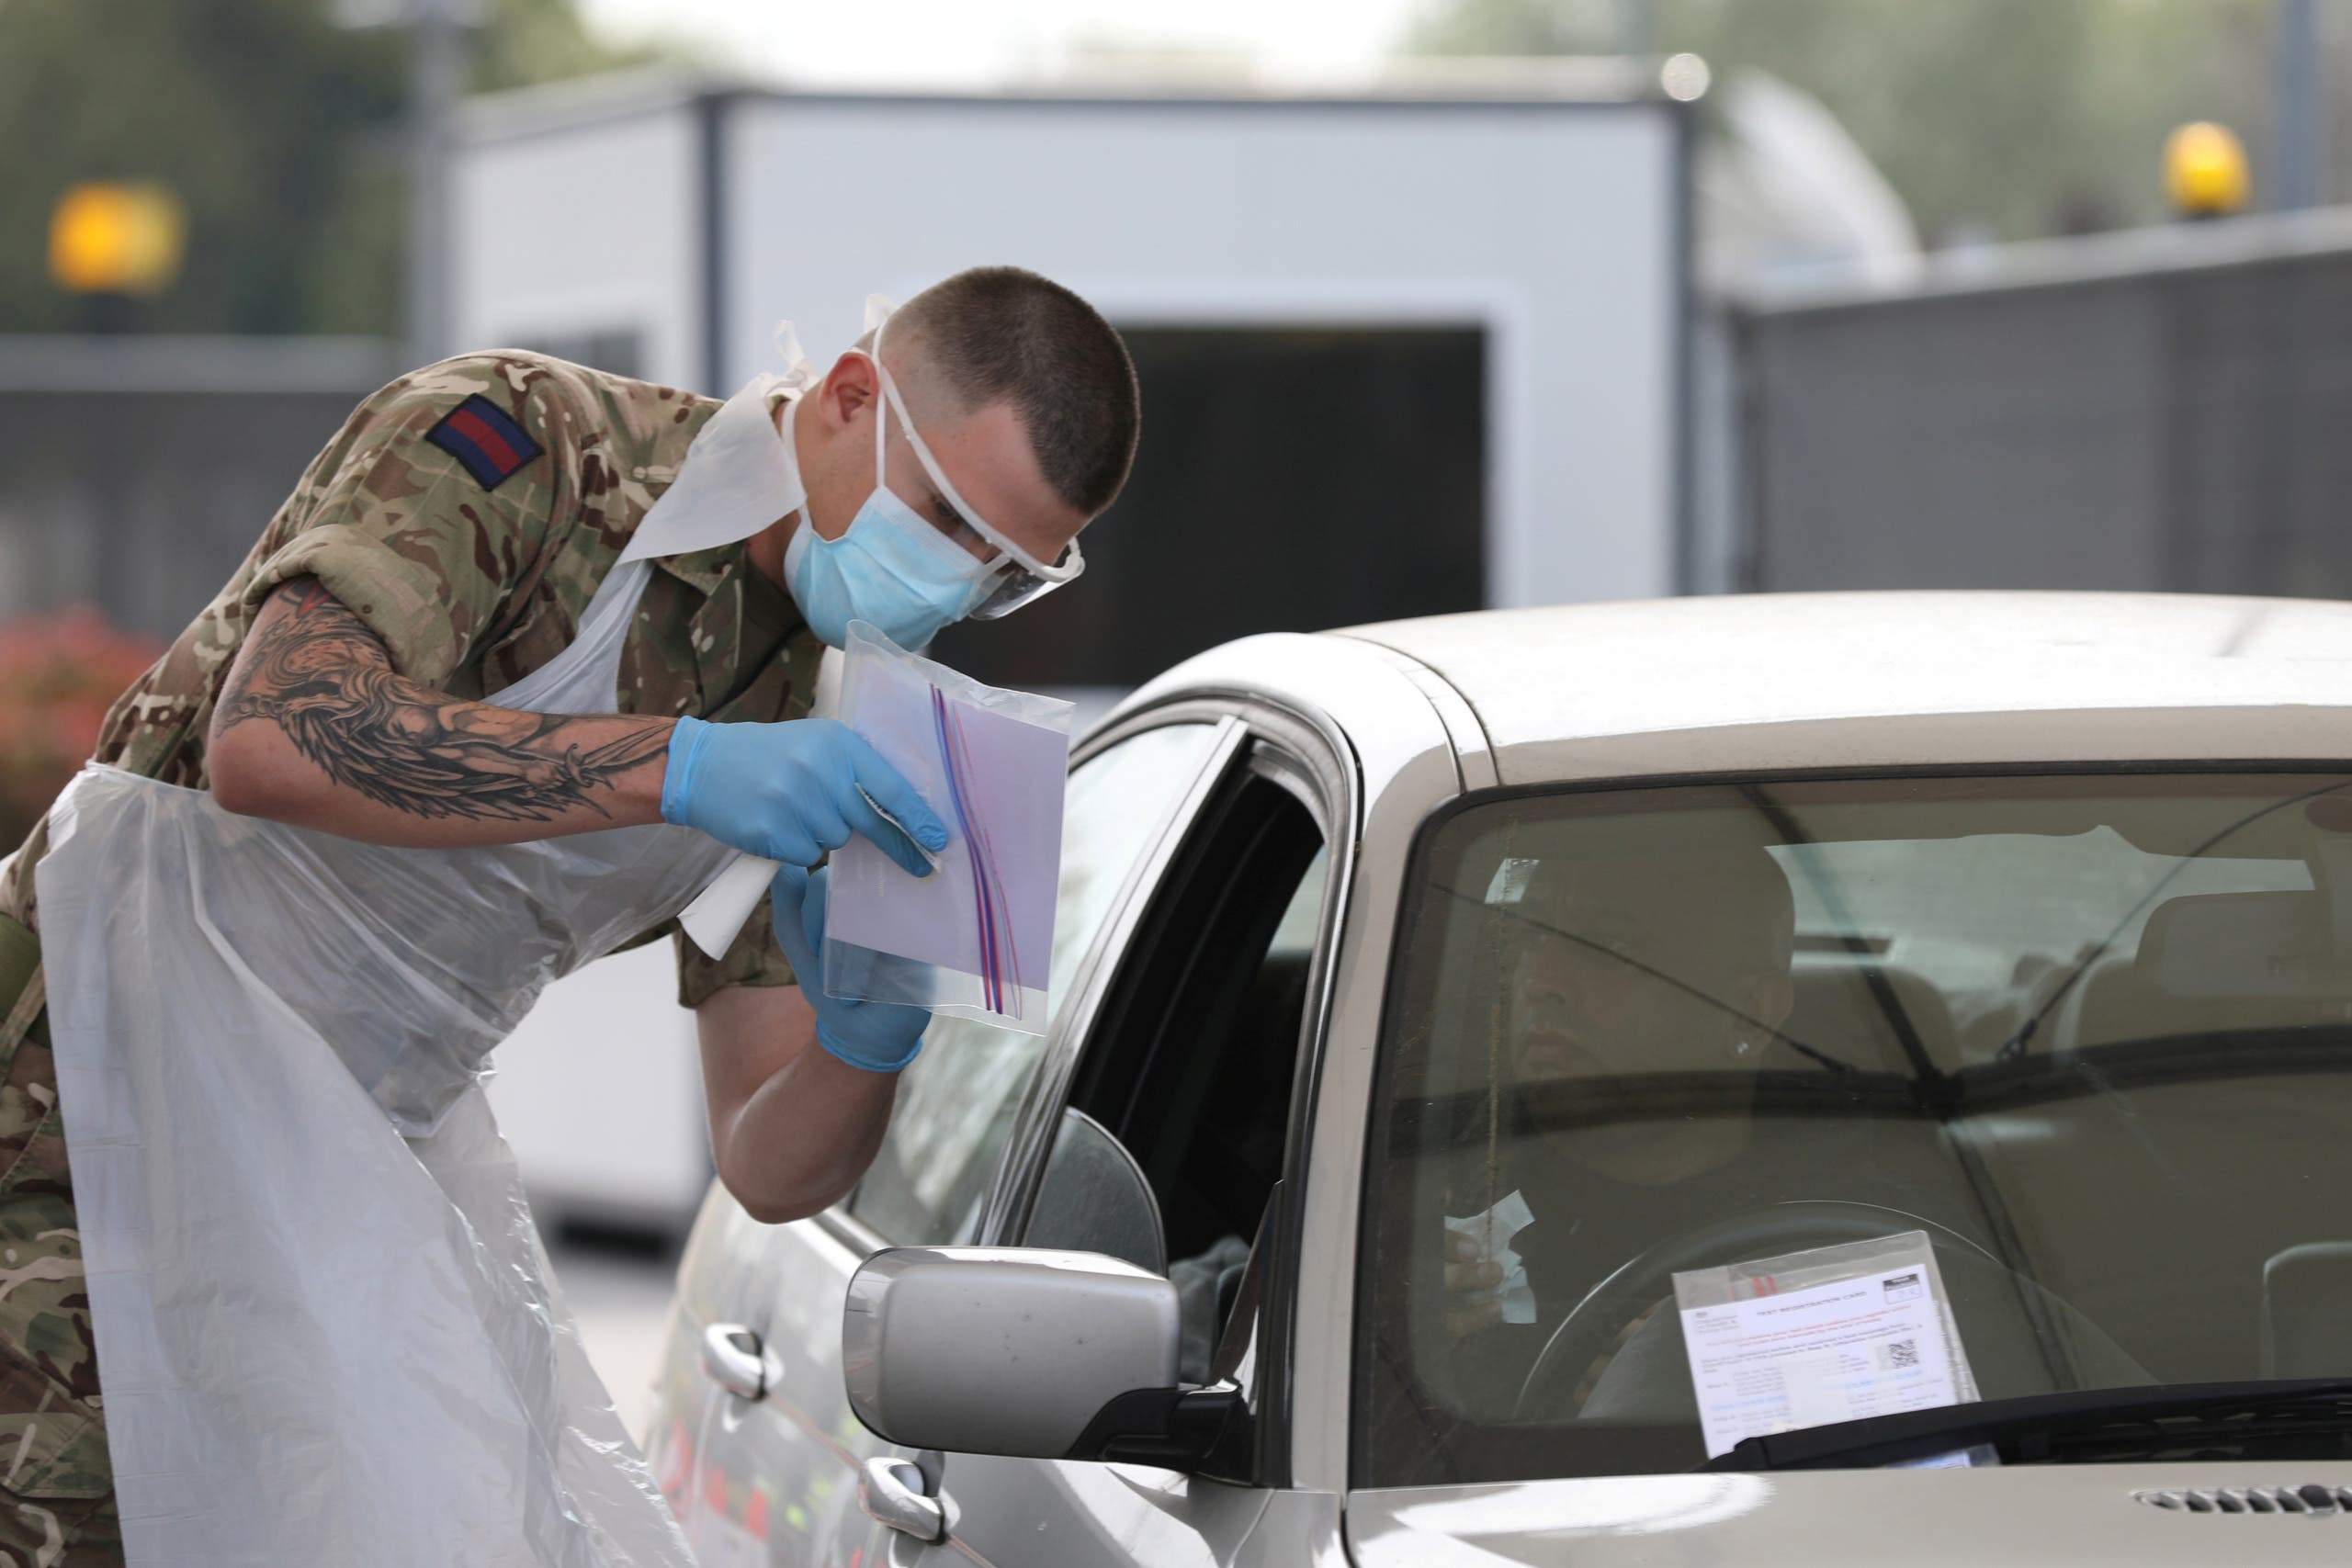 A soldier helps conducting COVID-19 testing for NHS key workers at a testing site in Wembley, London, amid the coronavirus outbreak in Britain, April 16, 2020. (Reuters)